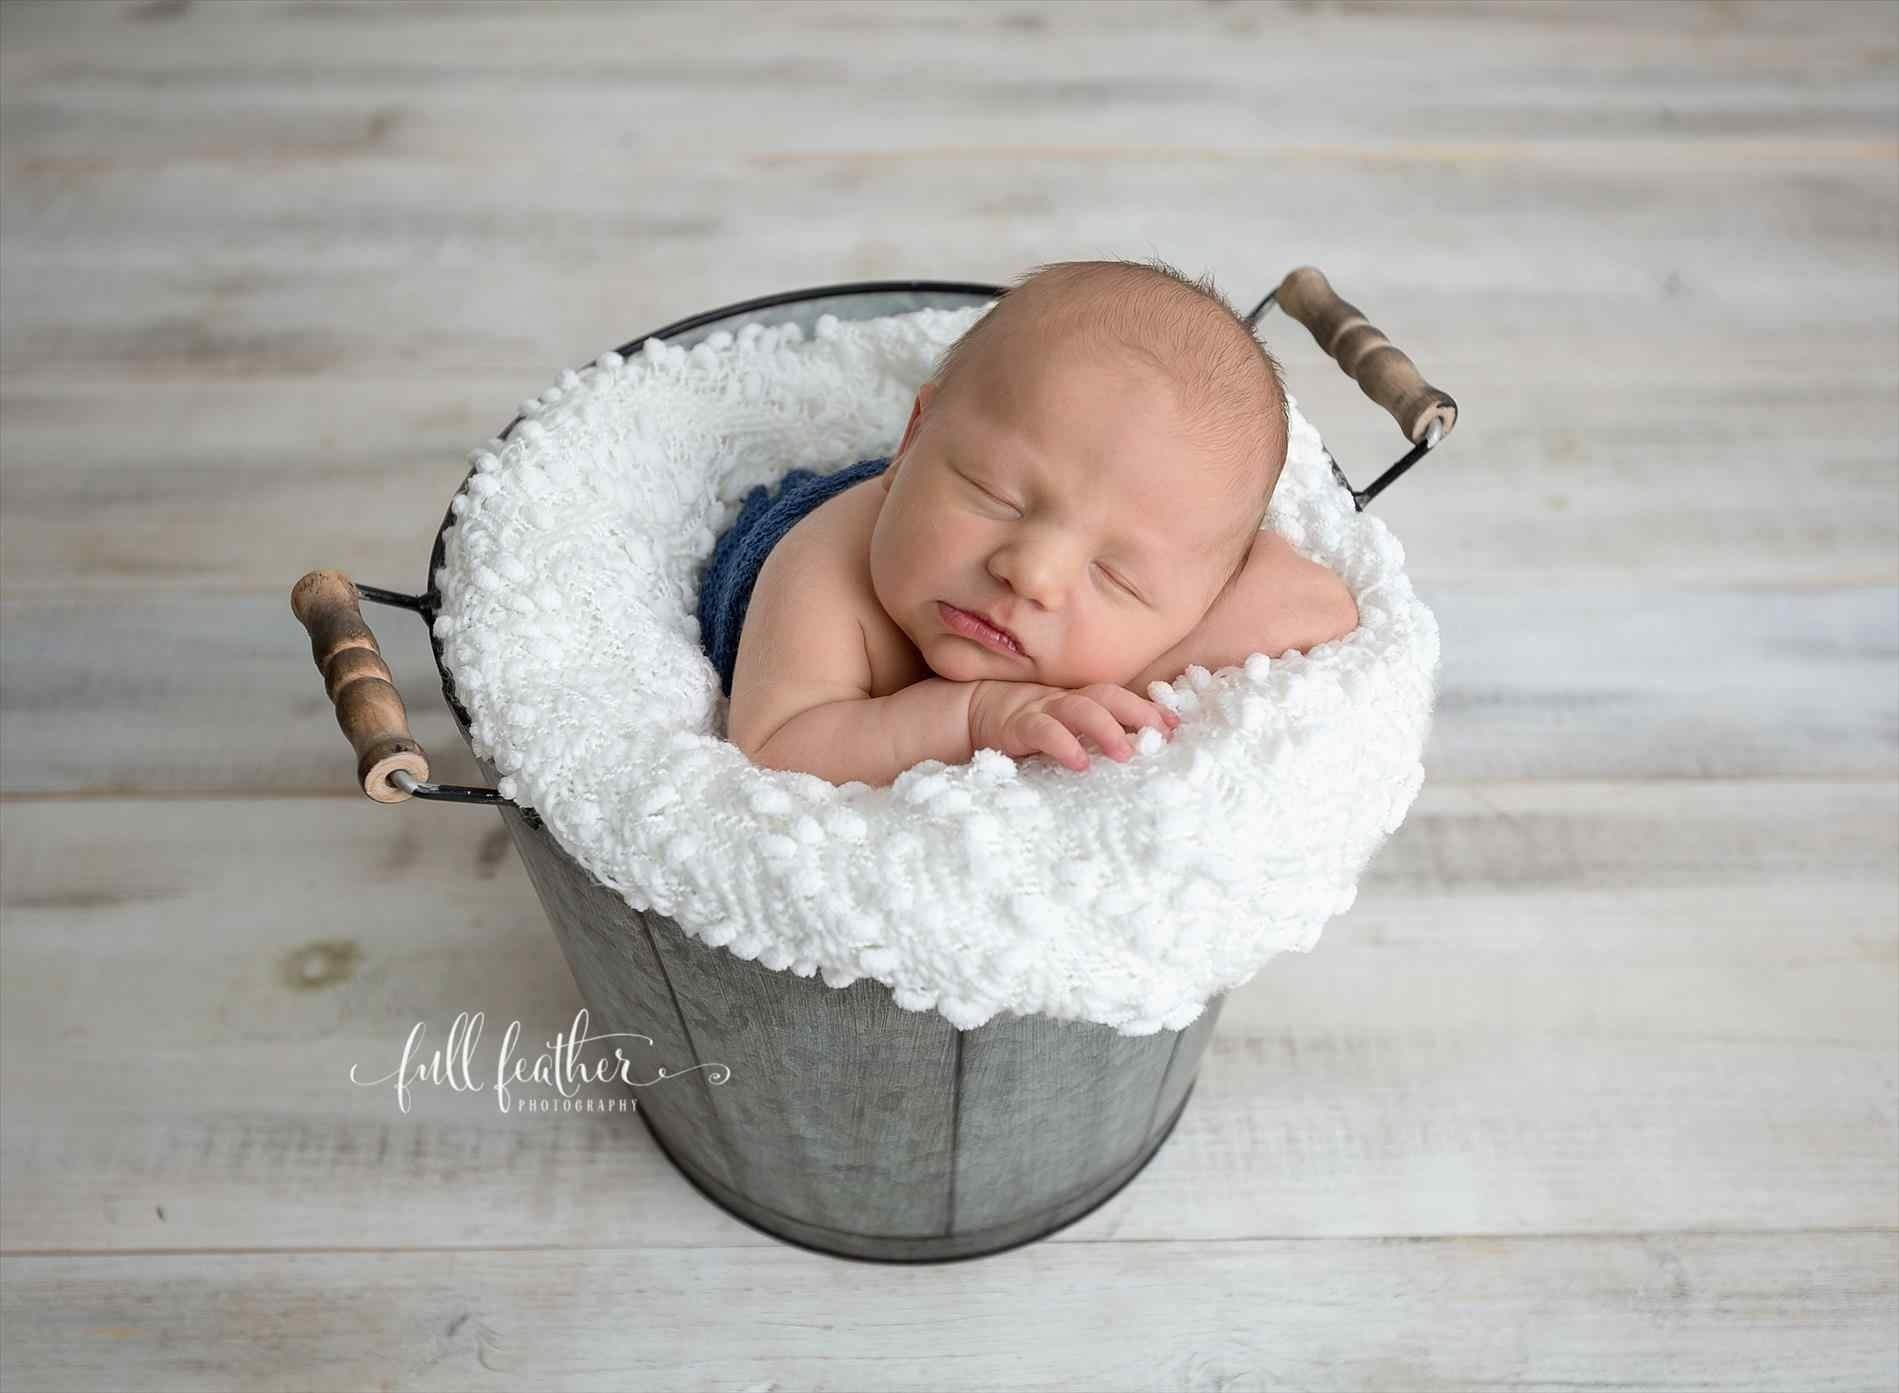 10 Gorgeous Cute Newborn Baby Picture Ideas newborn baby boy photoshoot 2018 athelred